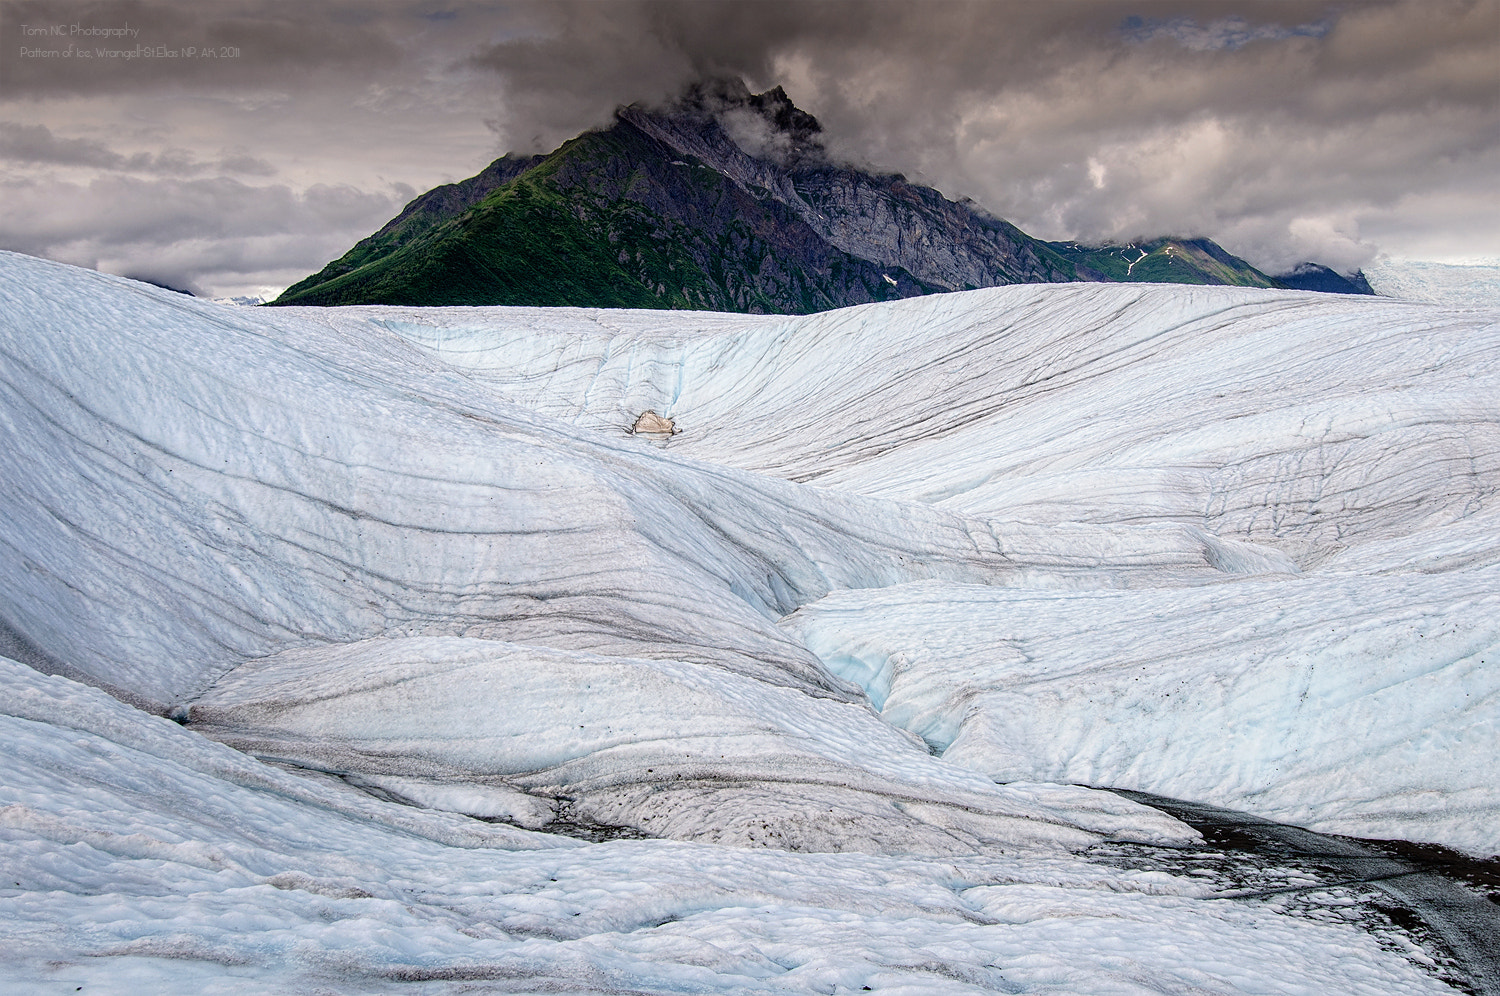 Photograph The Wave on Ice by Noppawat Charoensinphon on 500px